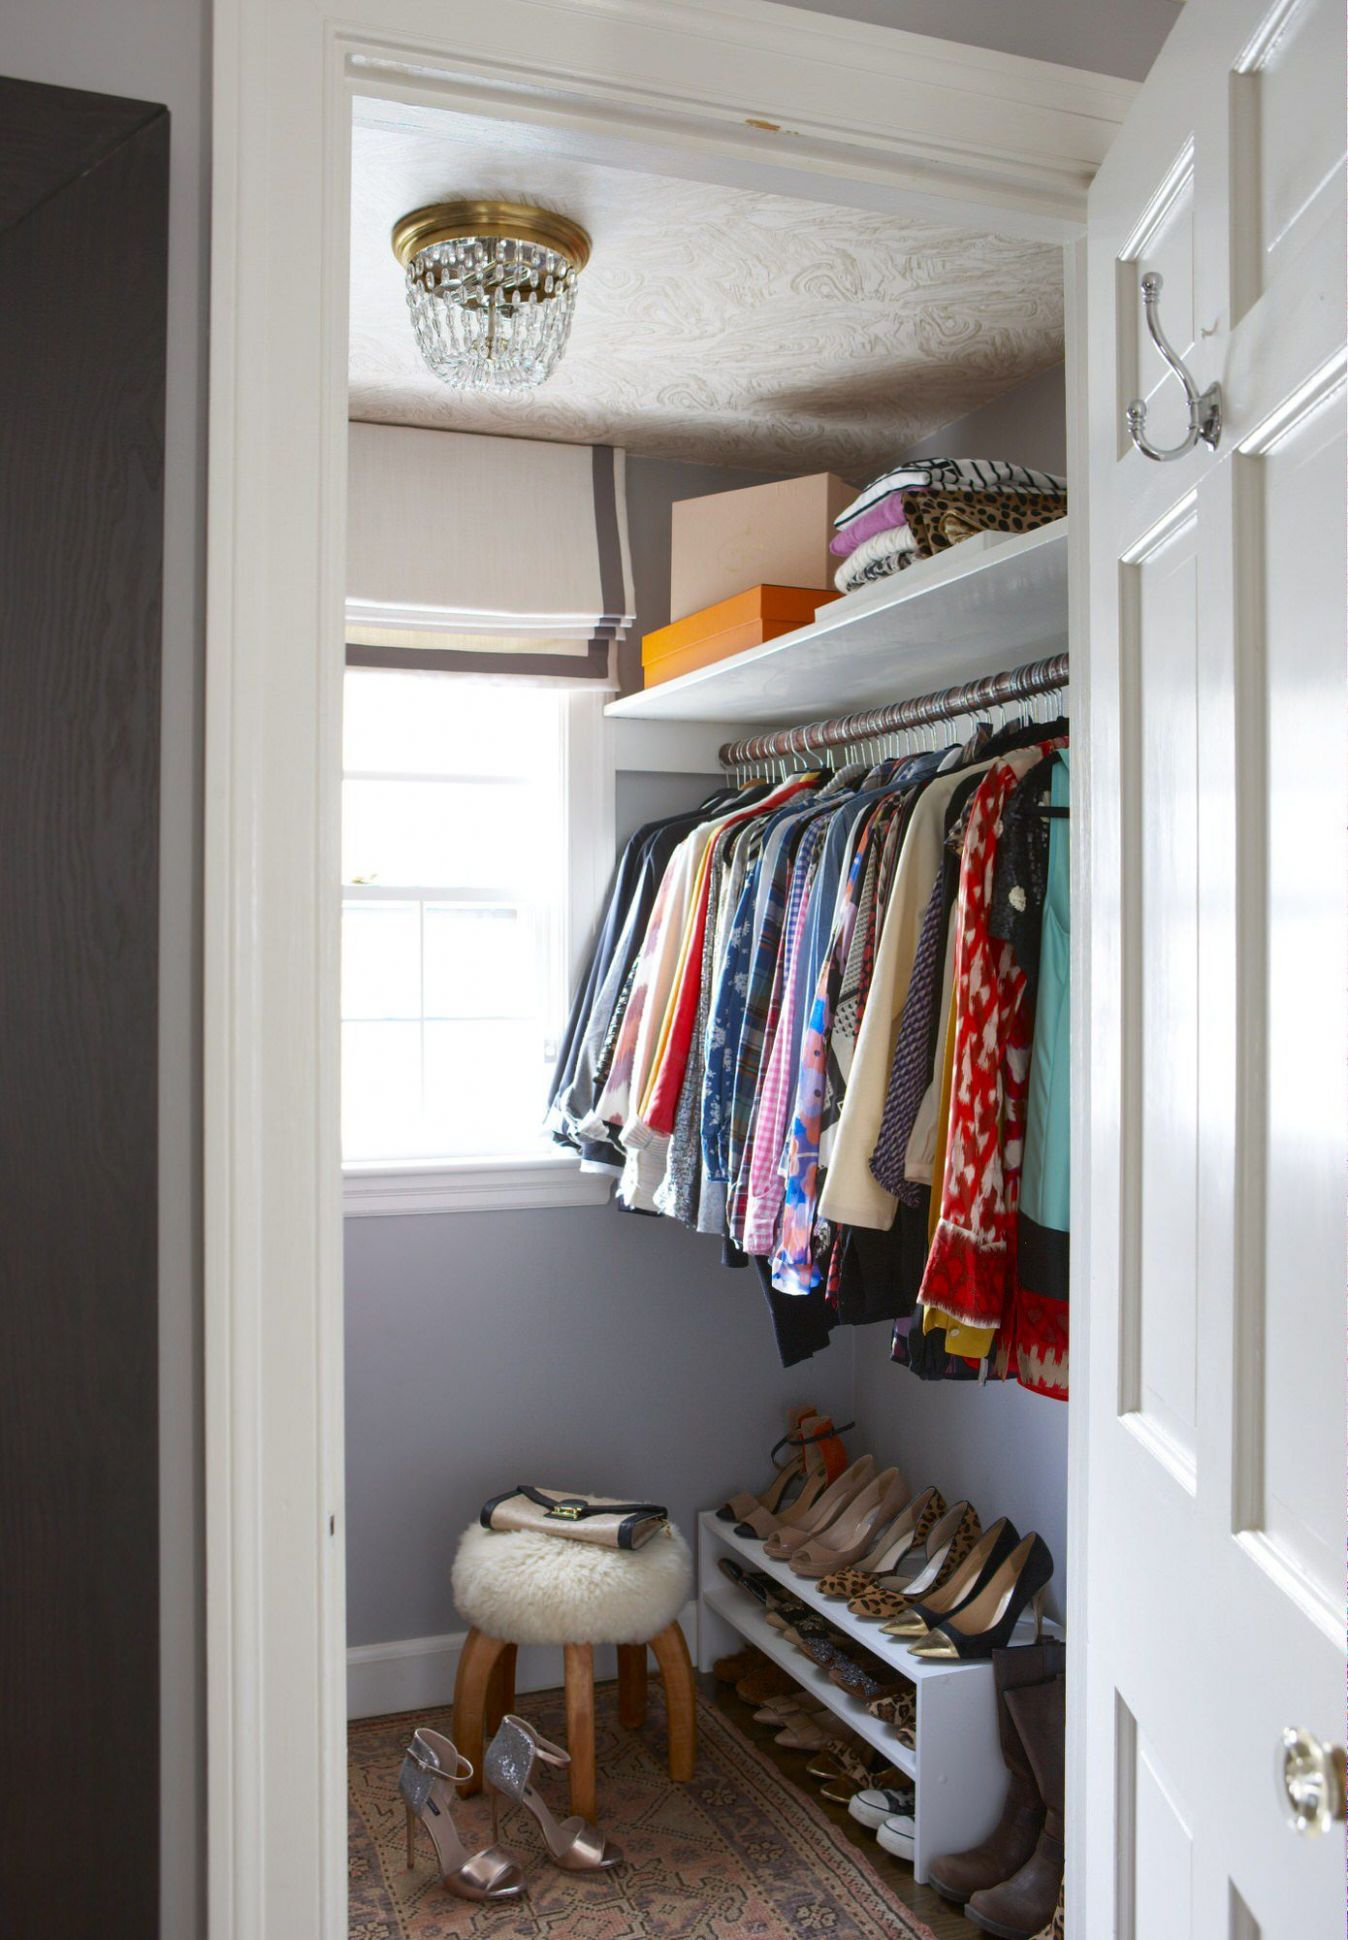 How To Build A Walk In Closet Small Bedroom - Image of Bathroom ...